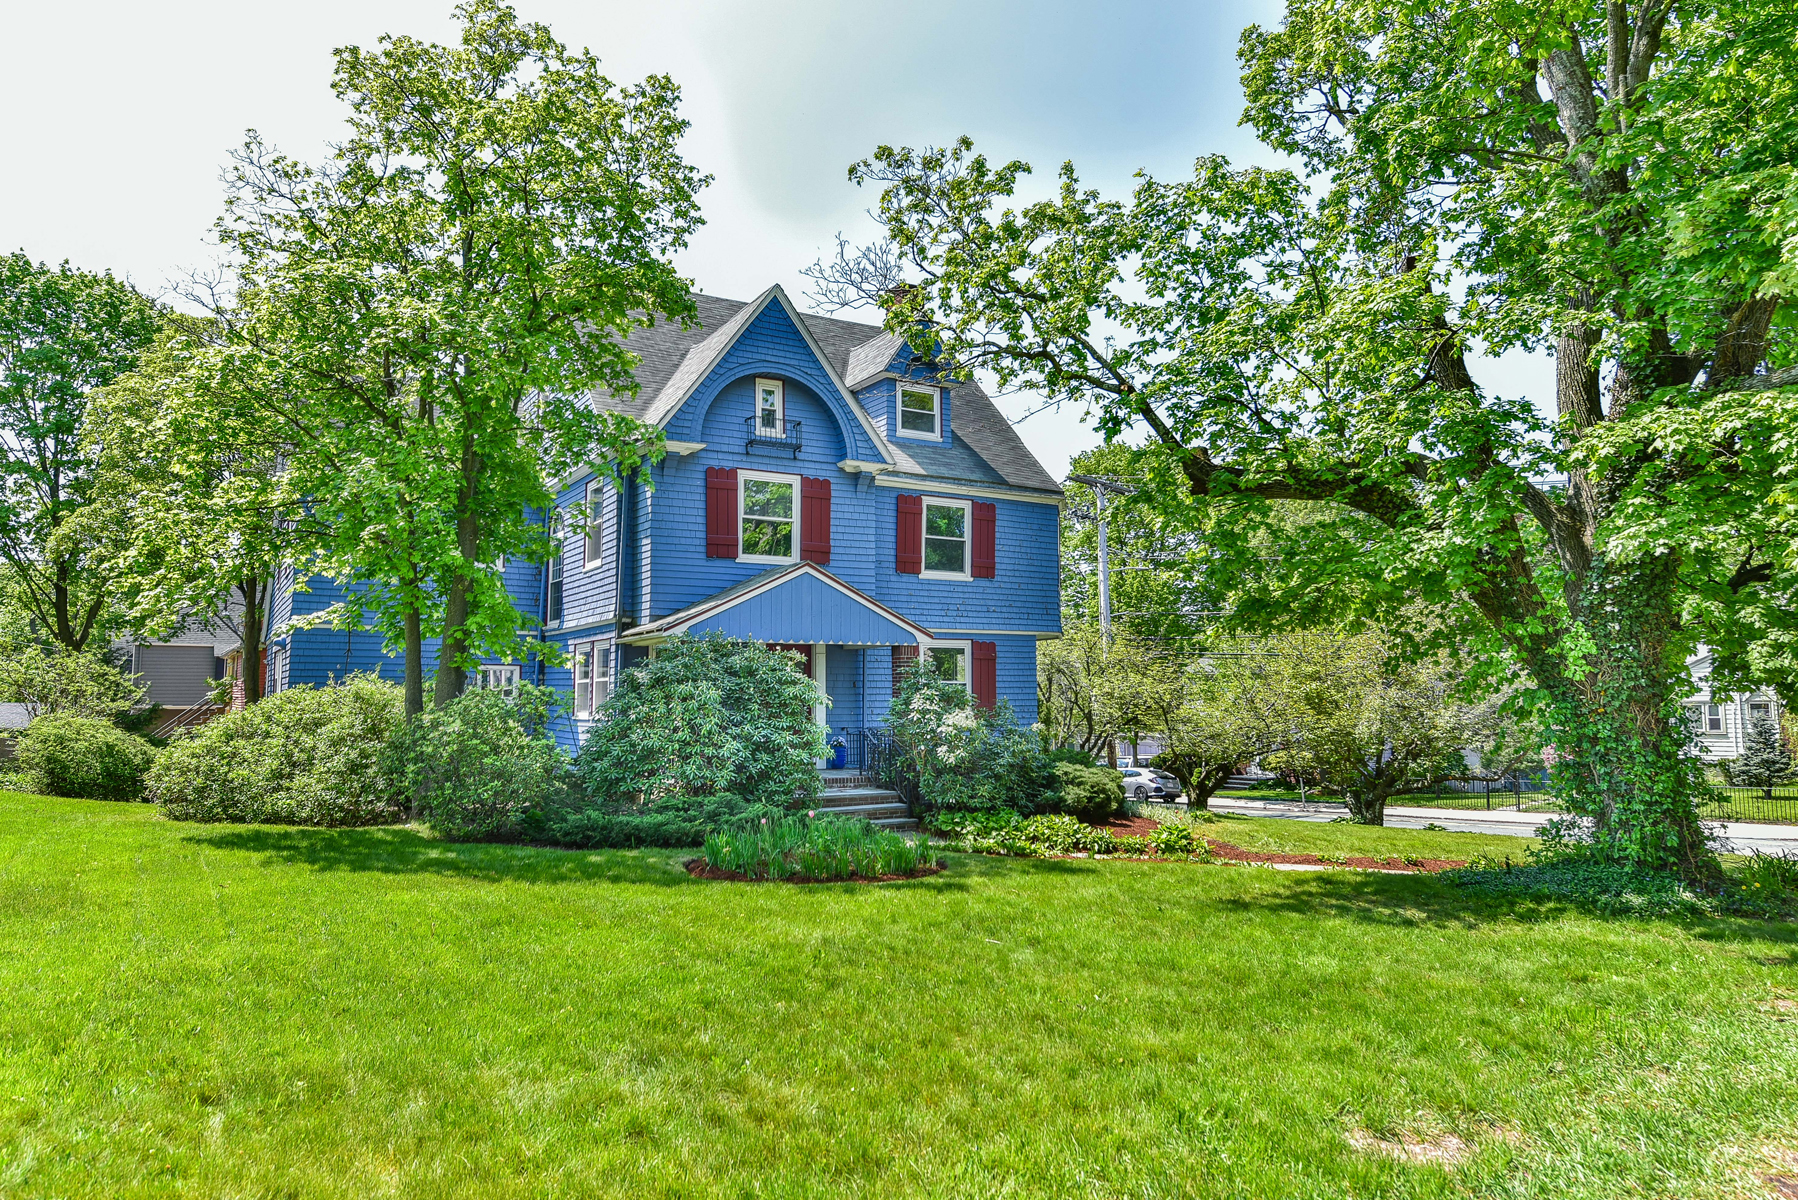 Single Family Home for Sale at Grand Shingle Style Colonial 281 Ashmont Street Boston, Massachusetts, 02124 United States